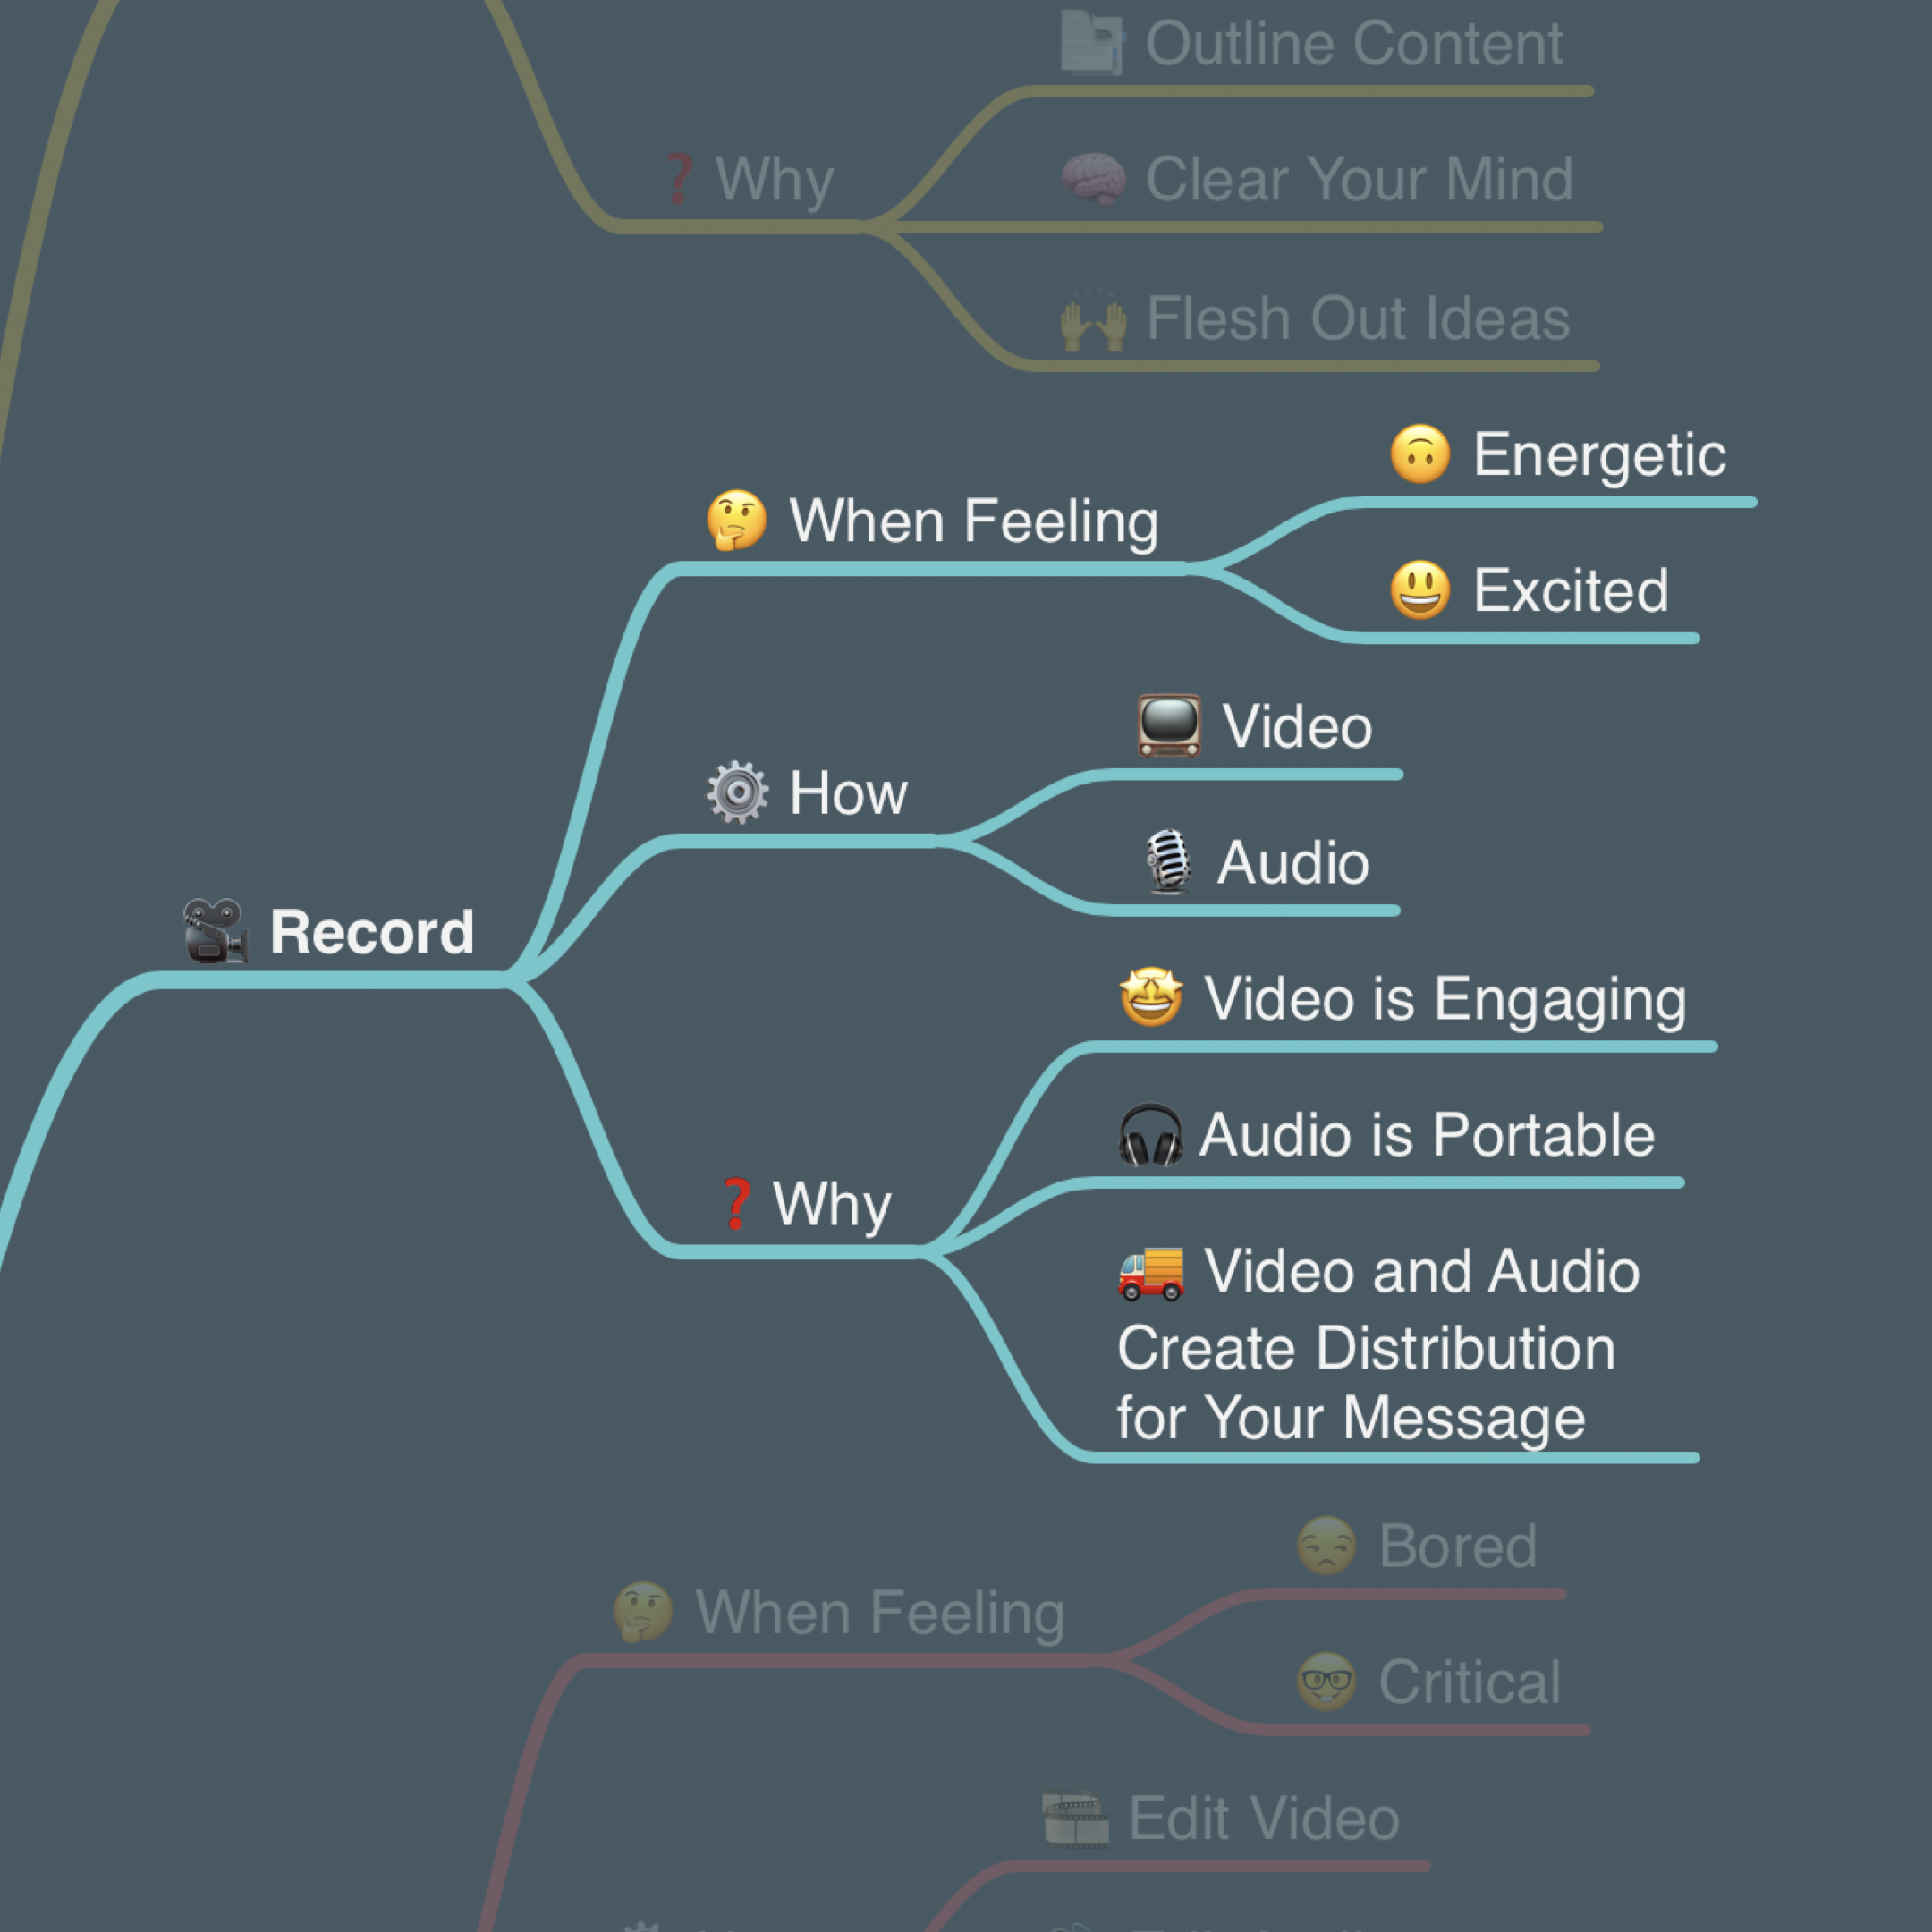 Sean's Content Creation Flywheel - Record